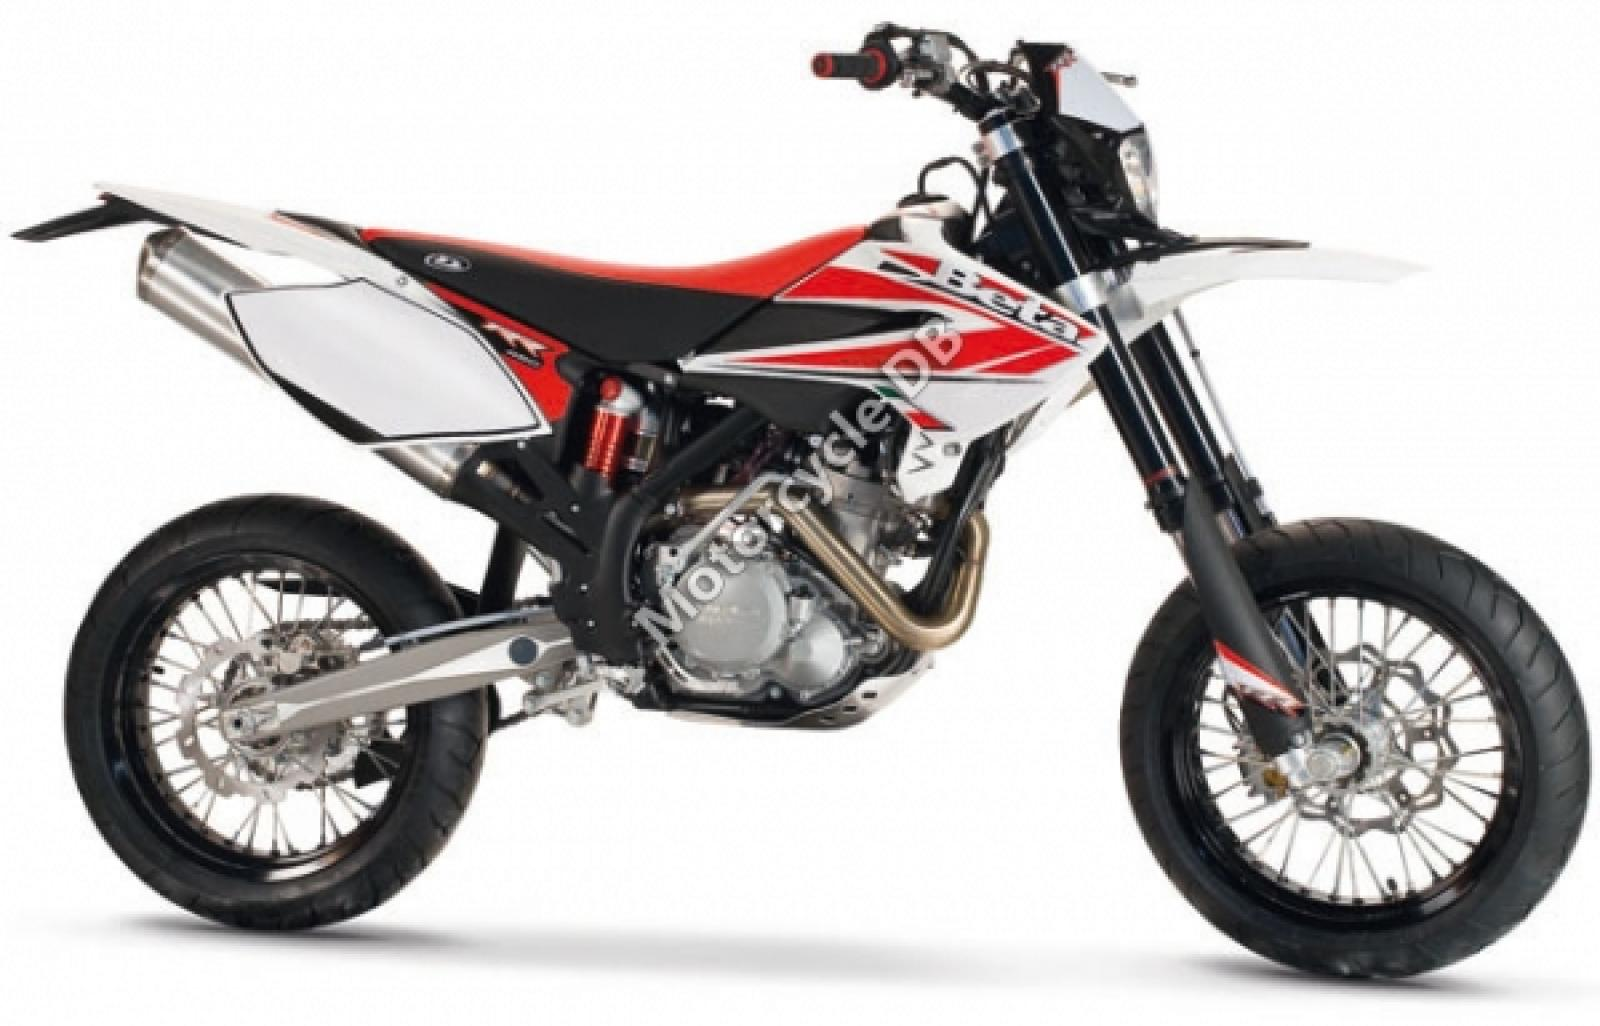 Highland 950 V2 Outback Supermoto 2003 images #74903